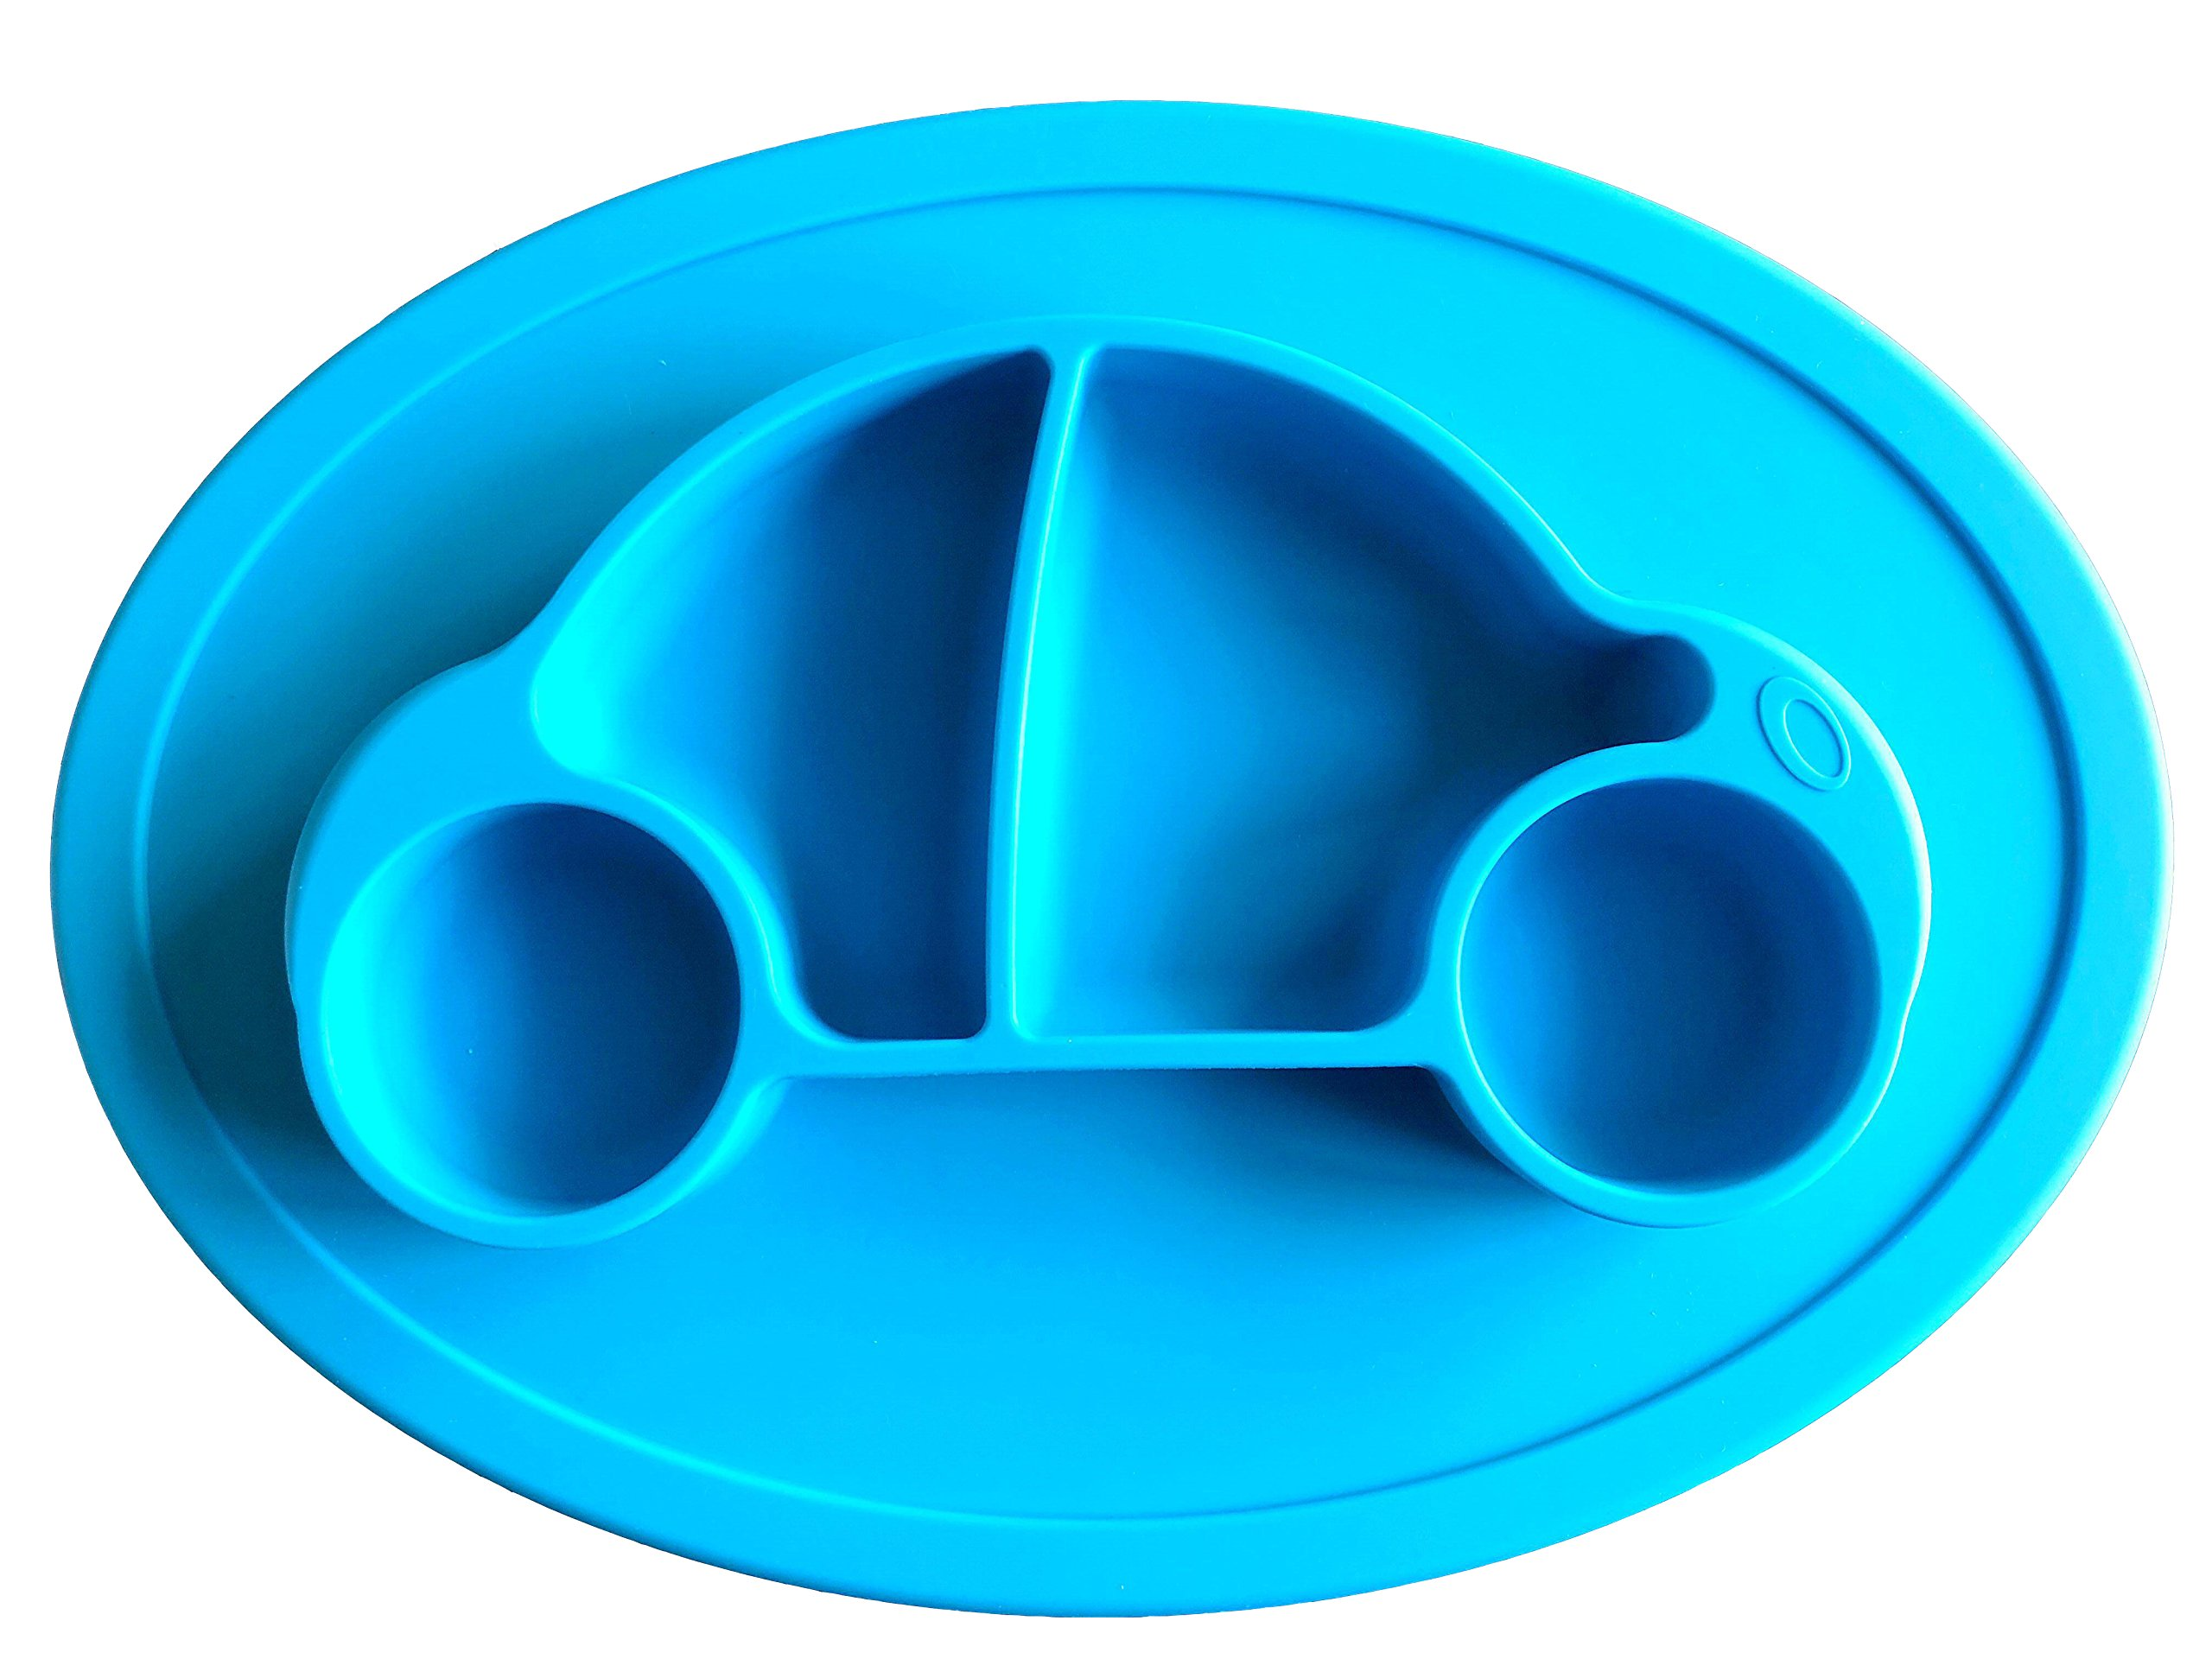 KoEiAsd Premium Silicone Suction Placemat,One-Piece Baby Plate for Babies Toddlers and Kids , Baby Table Place Mat for Toddlers,BPA-Free FDA Approved Strong Suction Plates for Toddlers11x7.8x0.9Inch